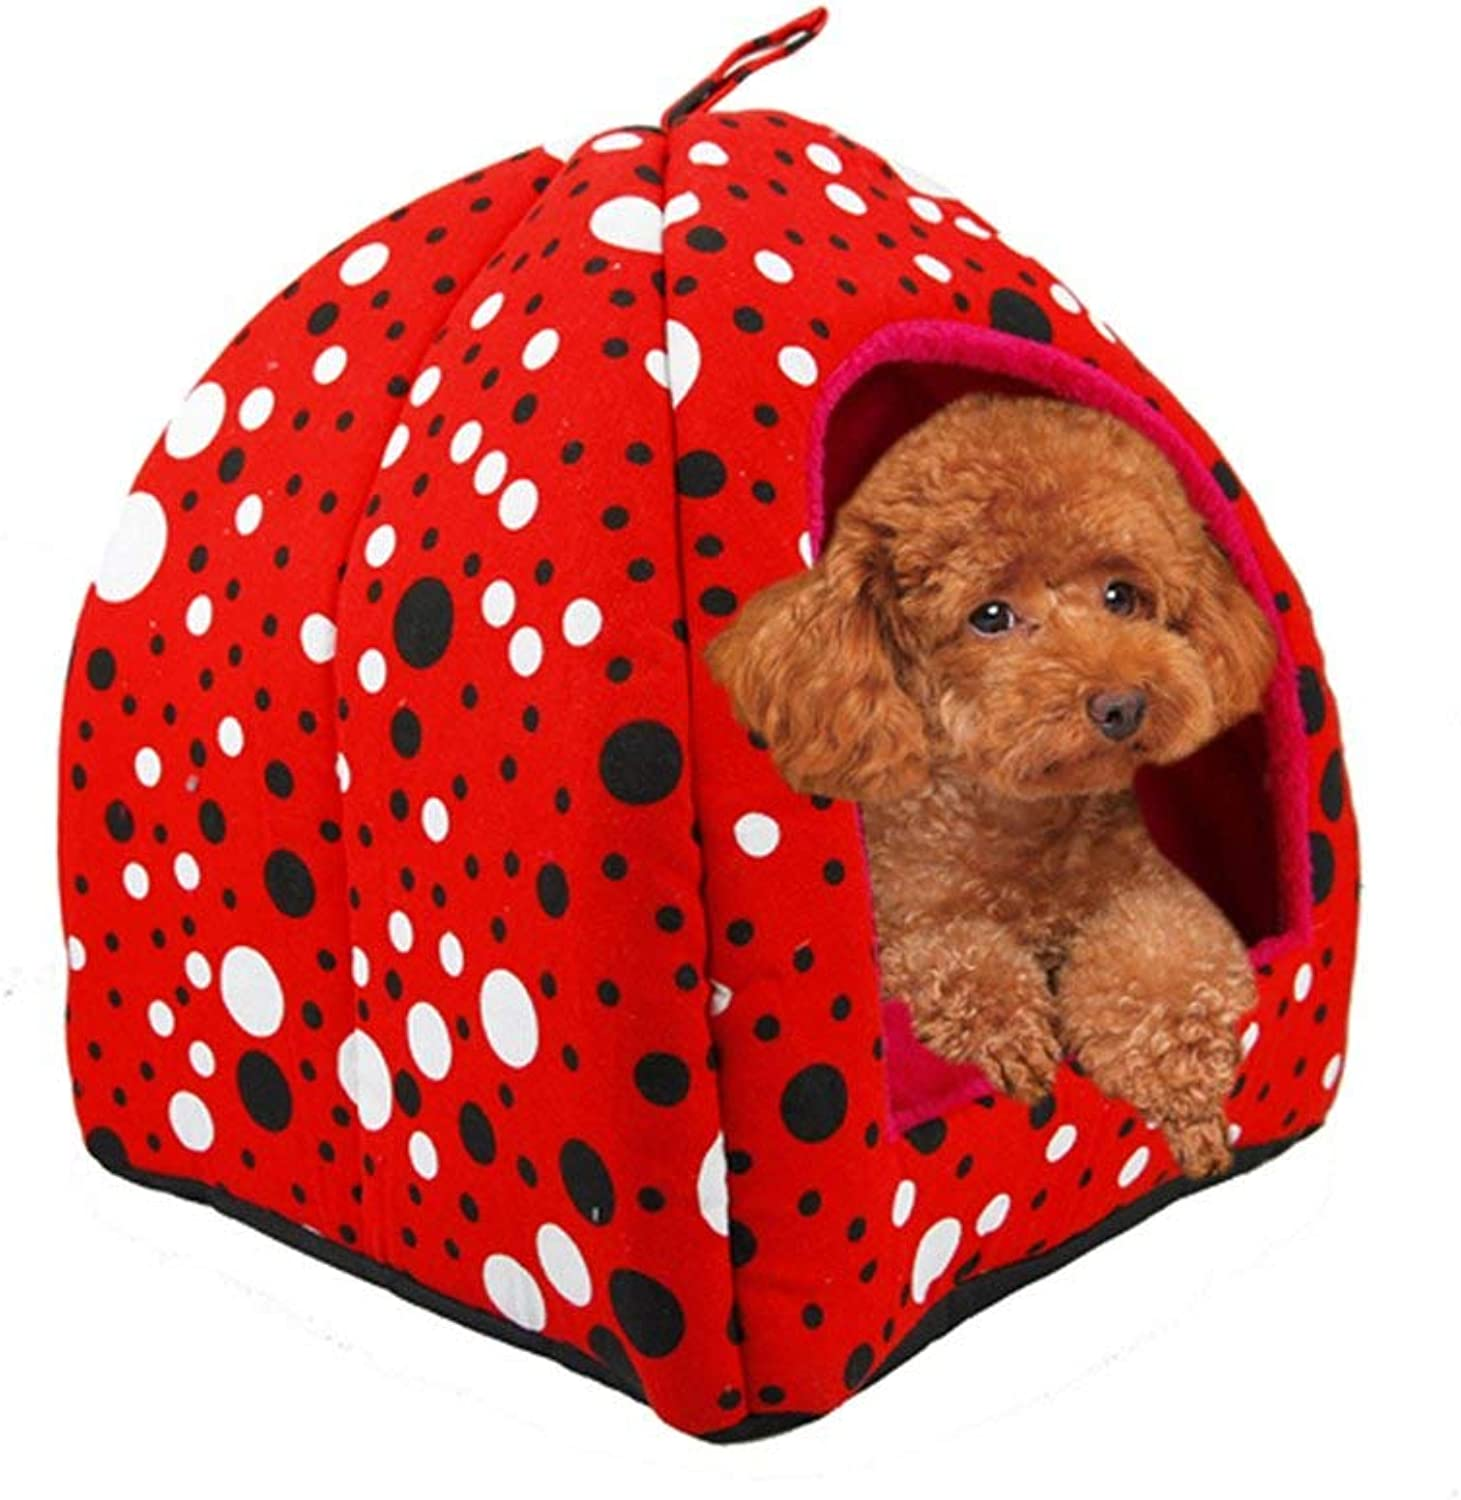 HeiPlaine Pet Sofa Pet Yurt Nest Cat Litter Pet Nest Autumn And Winter House Doghouse Pet Bed Kennel Pet Supplies Indoor Animal Hide Room (color   Big Red, Size   Small)